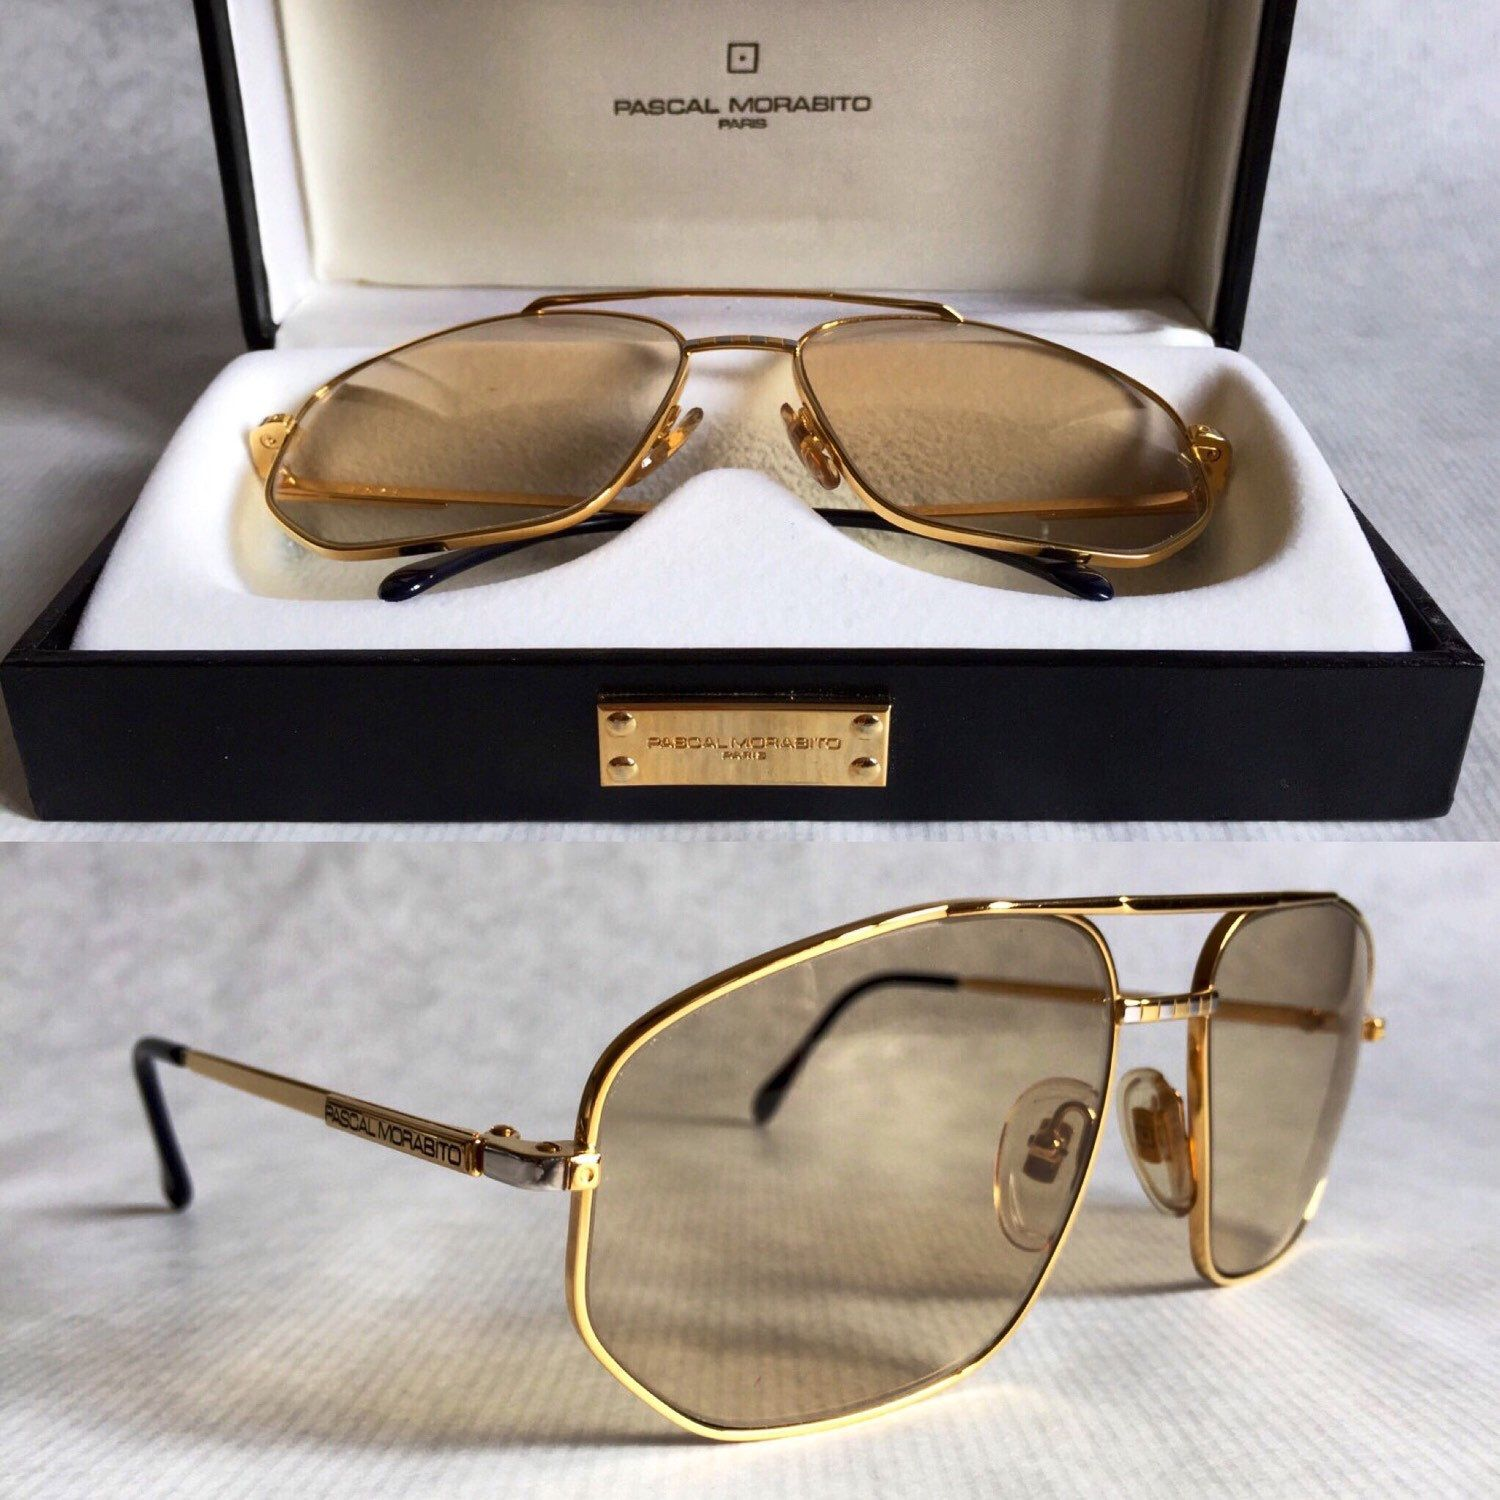 ec40a29c944 Pascal Morabito 24K Gold Photochromatic Crystal Lenses Luxury Lifestyle